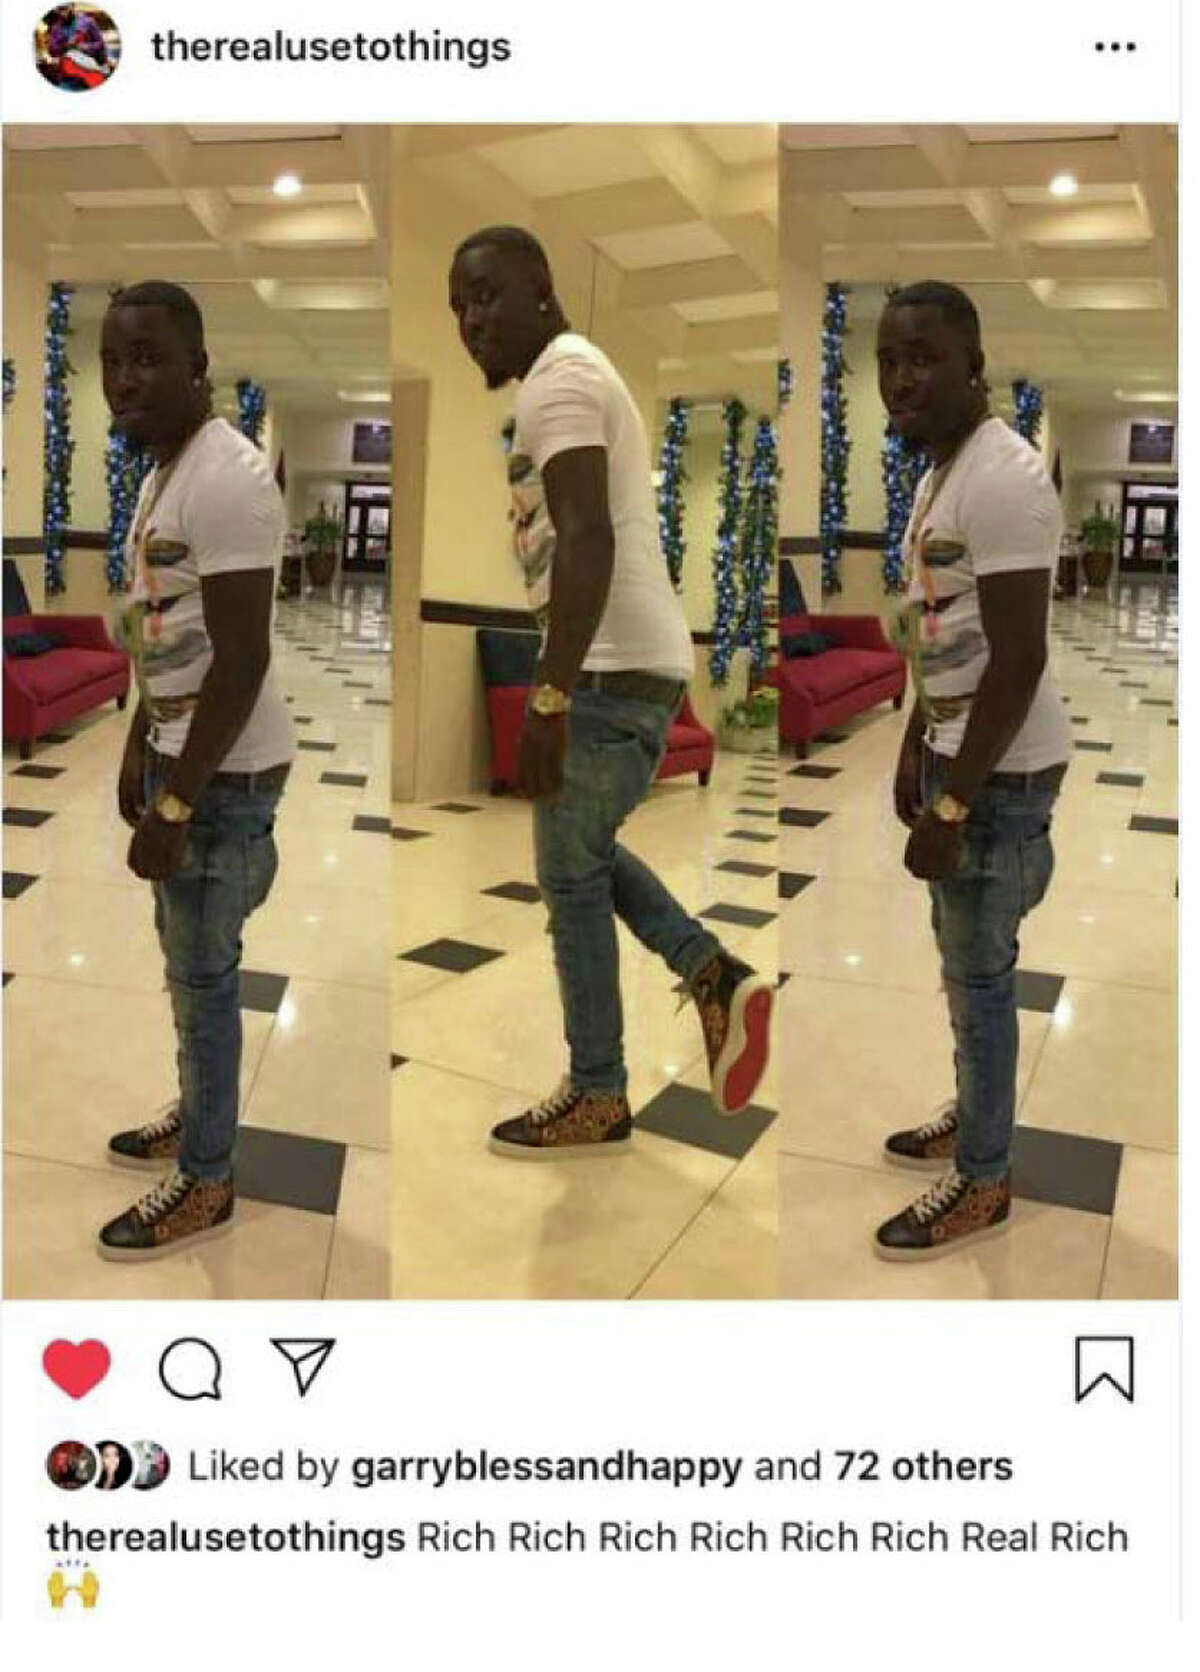 Instagram post showing Orlando Dennis are described in court records as capturing the defendants lifestyle and expensive attire. According to court records, the defendant is depicted lifting his foot to display the signature red sole commonly associated with luxury shoe designer Christian Louboutin. (U.S. Justice Department evidence)